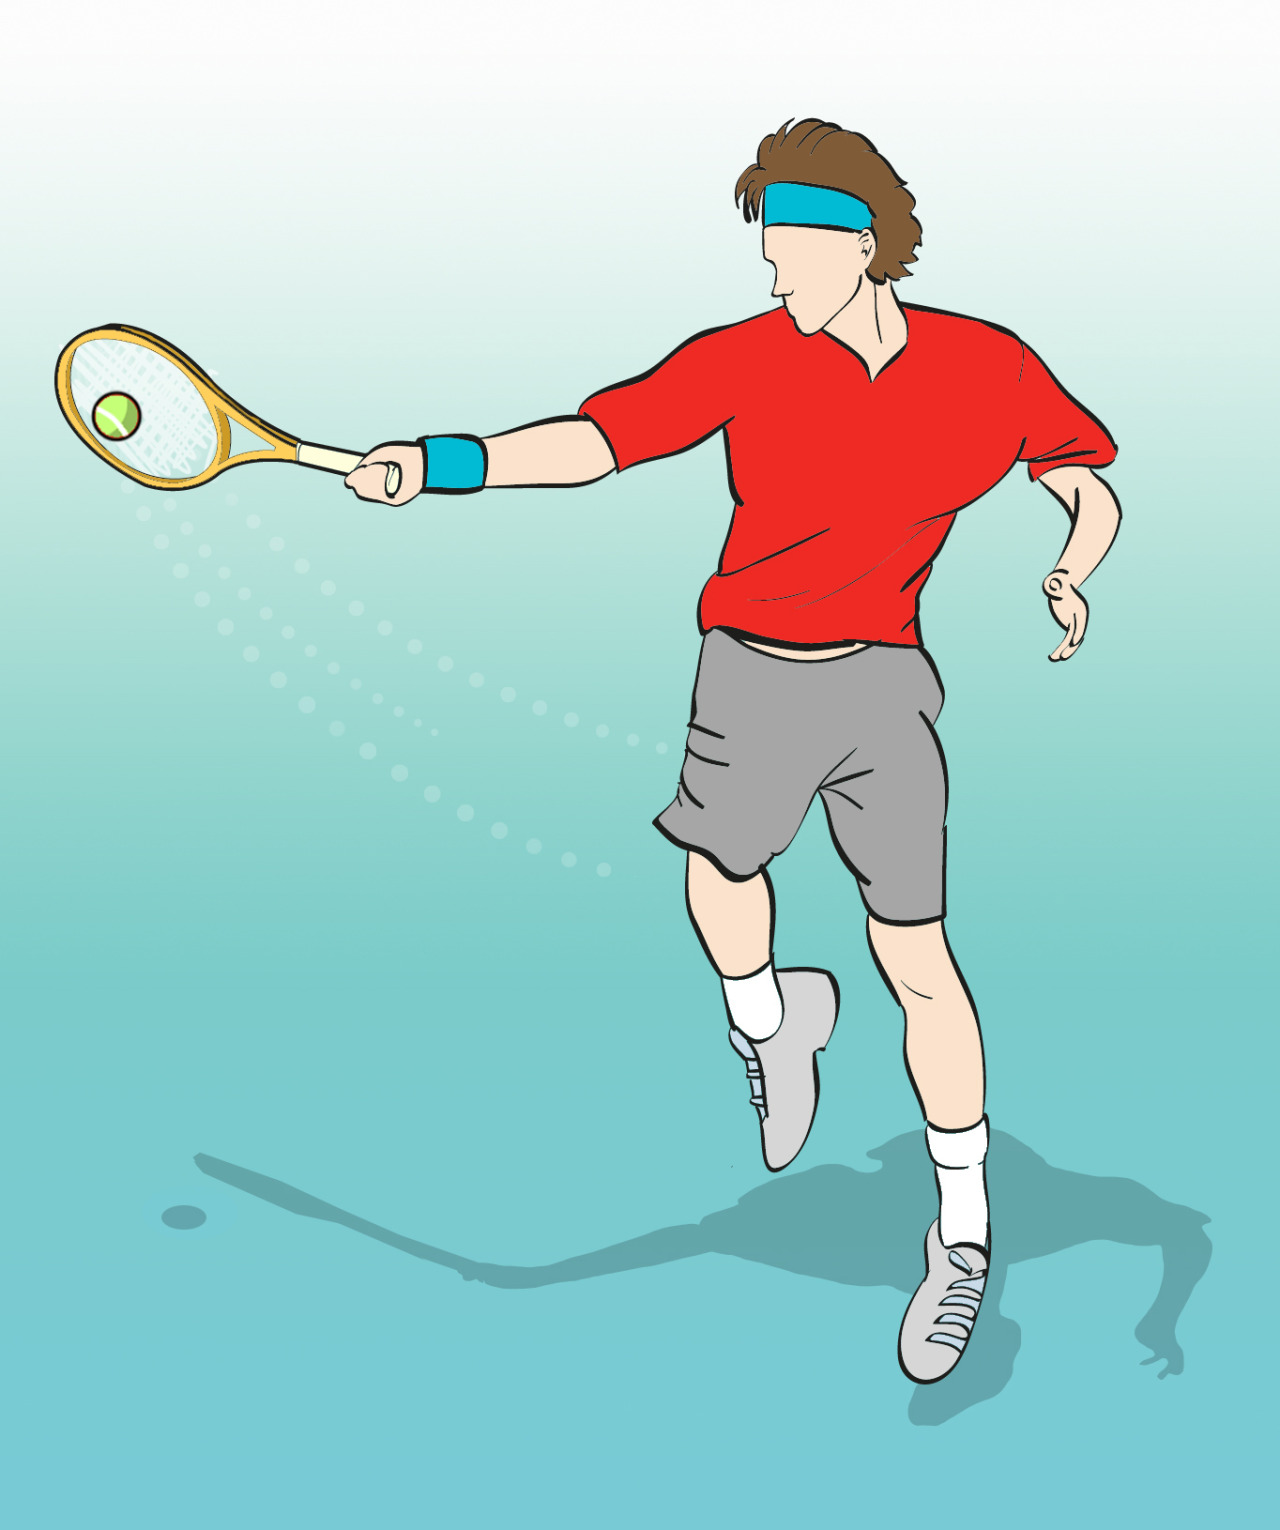 Tennis Illustration - Editorial